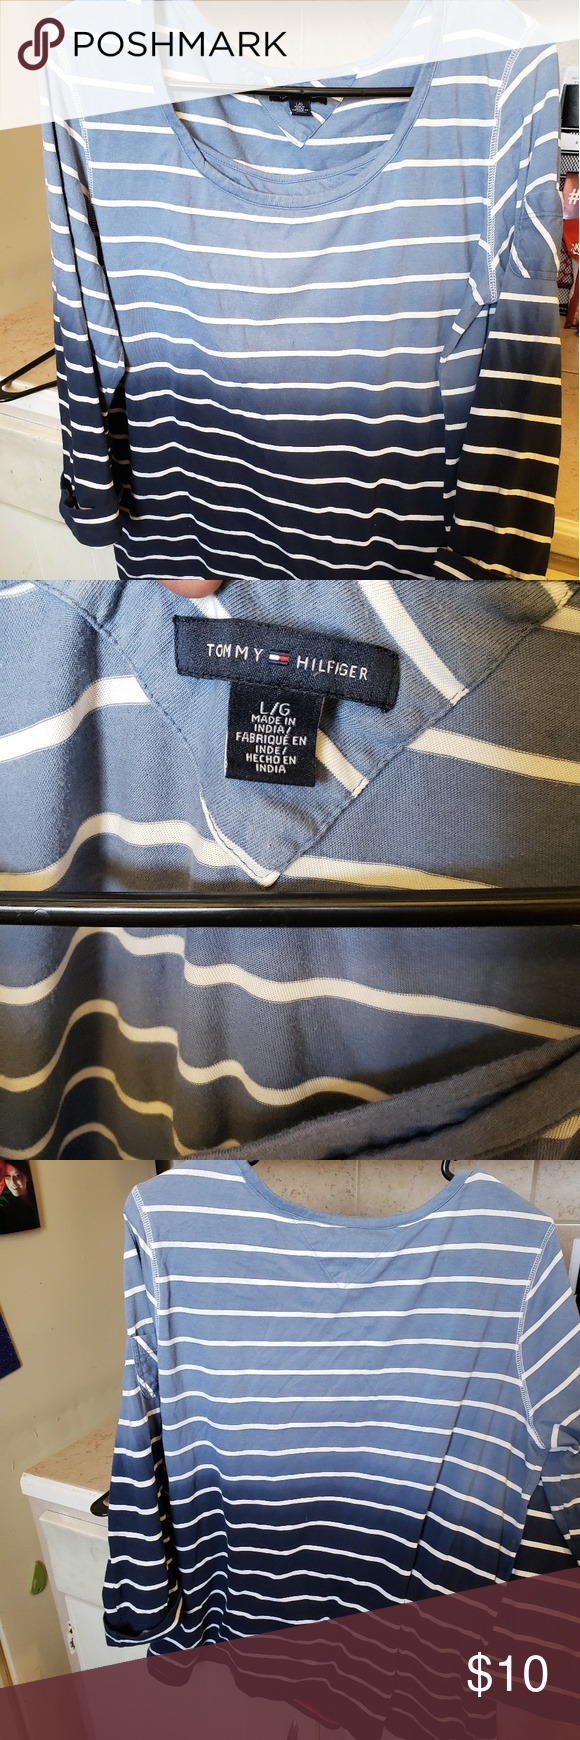 Tommy Hilfiger Ladies Top Tommy Hilfiger Blue Ombre Striped Top 3 4 Sleeves Size L Tommy Hilfiger Tops Tees Long Sleeve Tommy Hilfiger Womens Tops Hilfiger [ 1740 x 580 Pixel ]